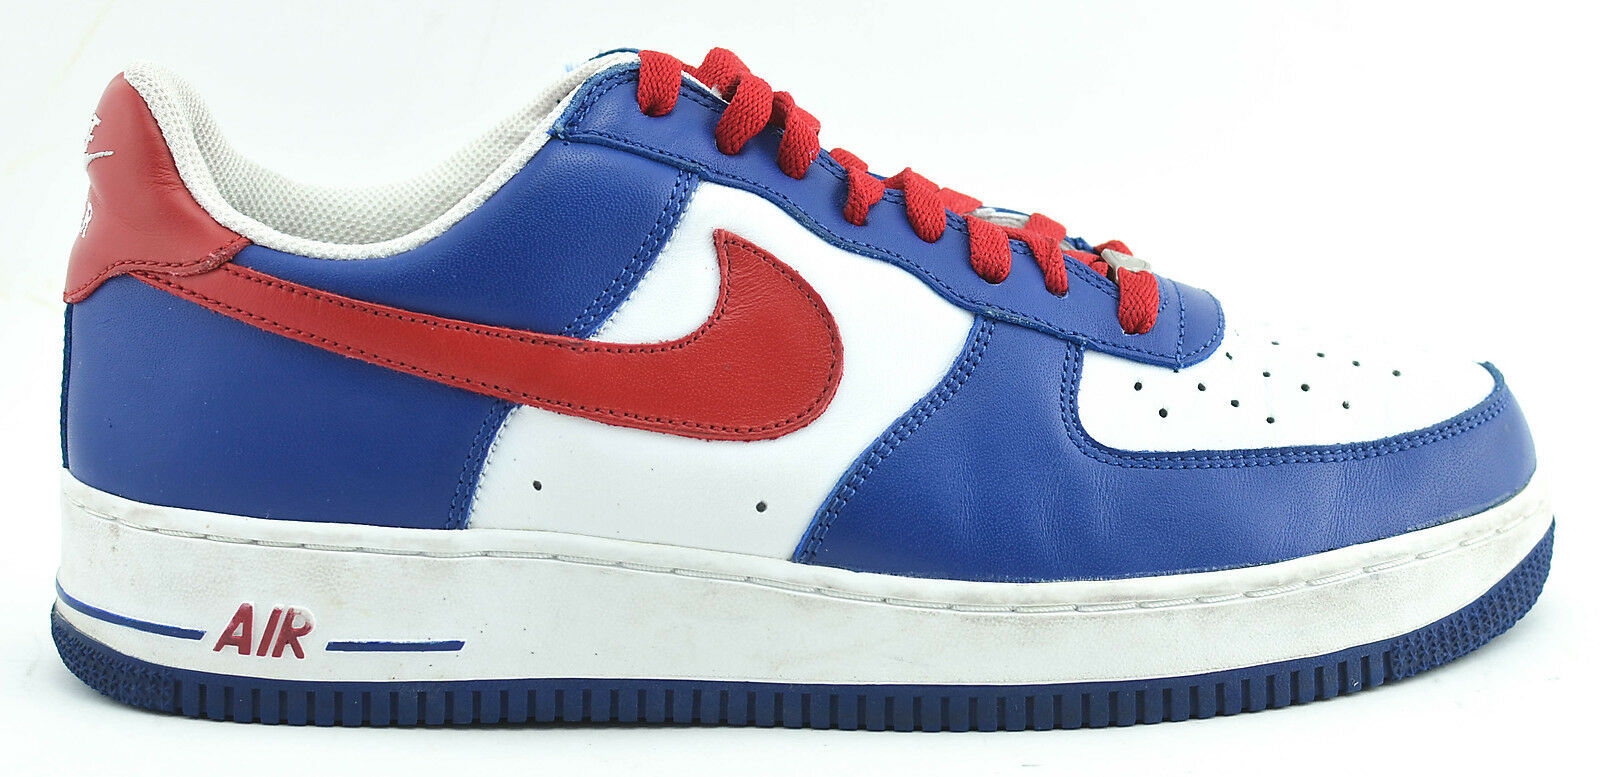 663717e089 MENS NIKE AIR FORCE 1 2004 RUNNING SHOES SIZE 11 RED WHITE BLUE 306353 164  82